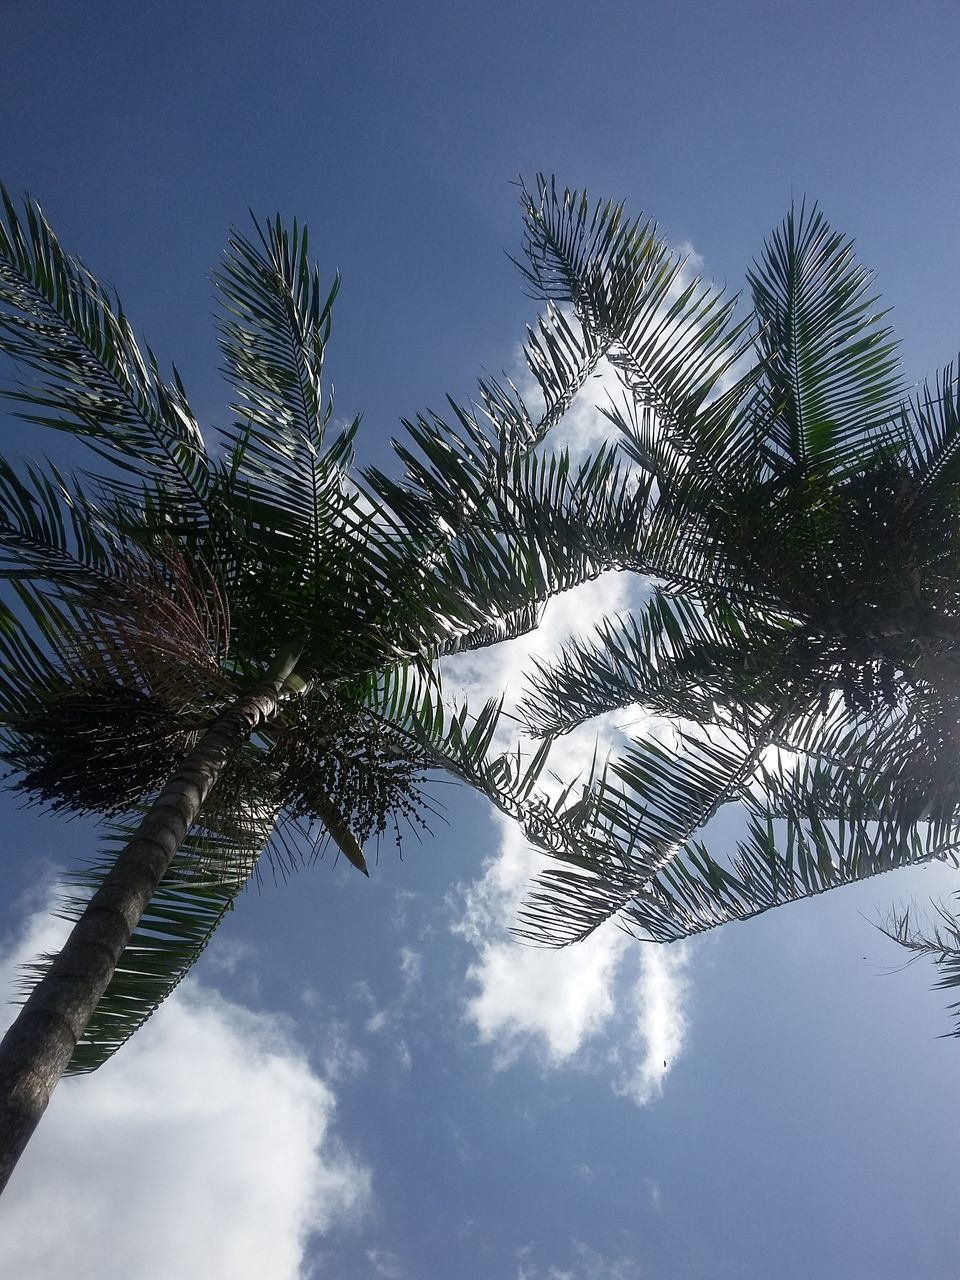 palm tree, low angle view, tree, sky, nature, growth, day, beauty in nature, palm frond, tranquility, no people, tree trunk, outdoors, scenics